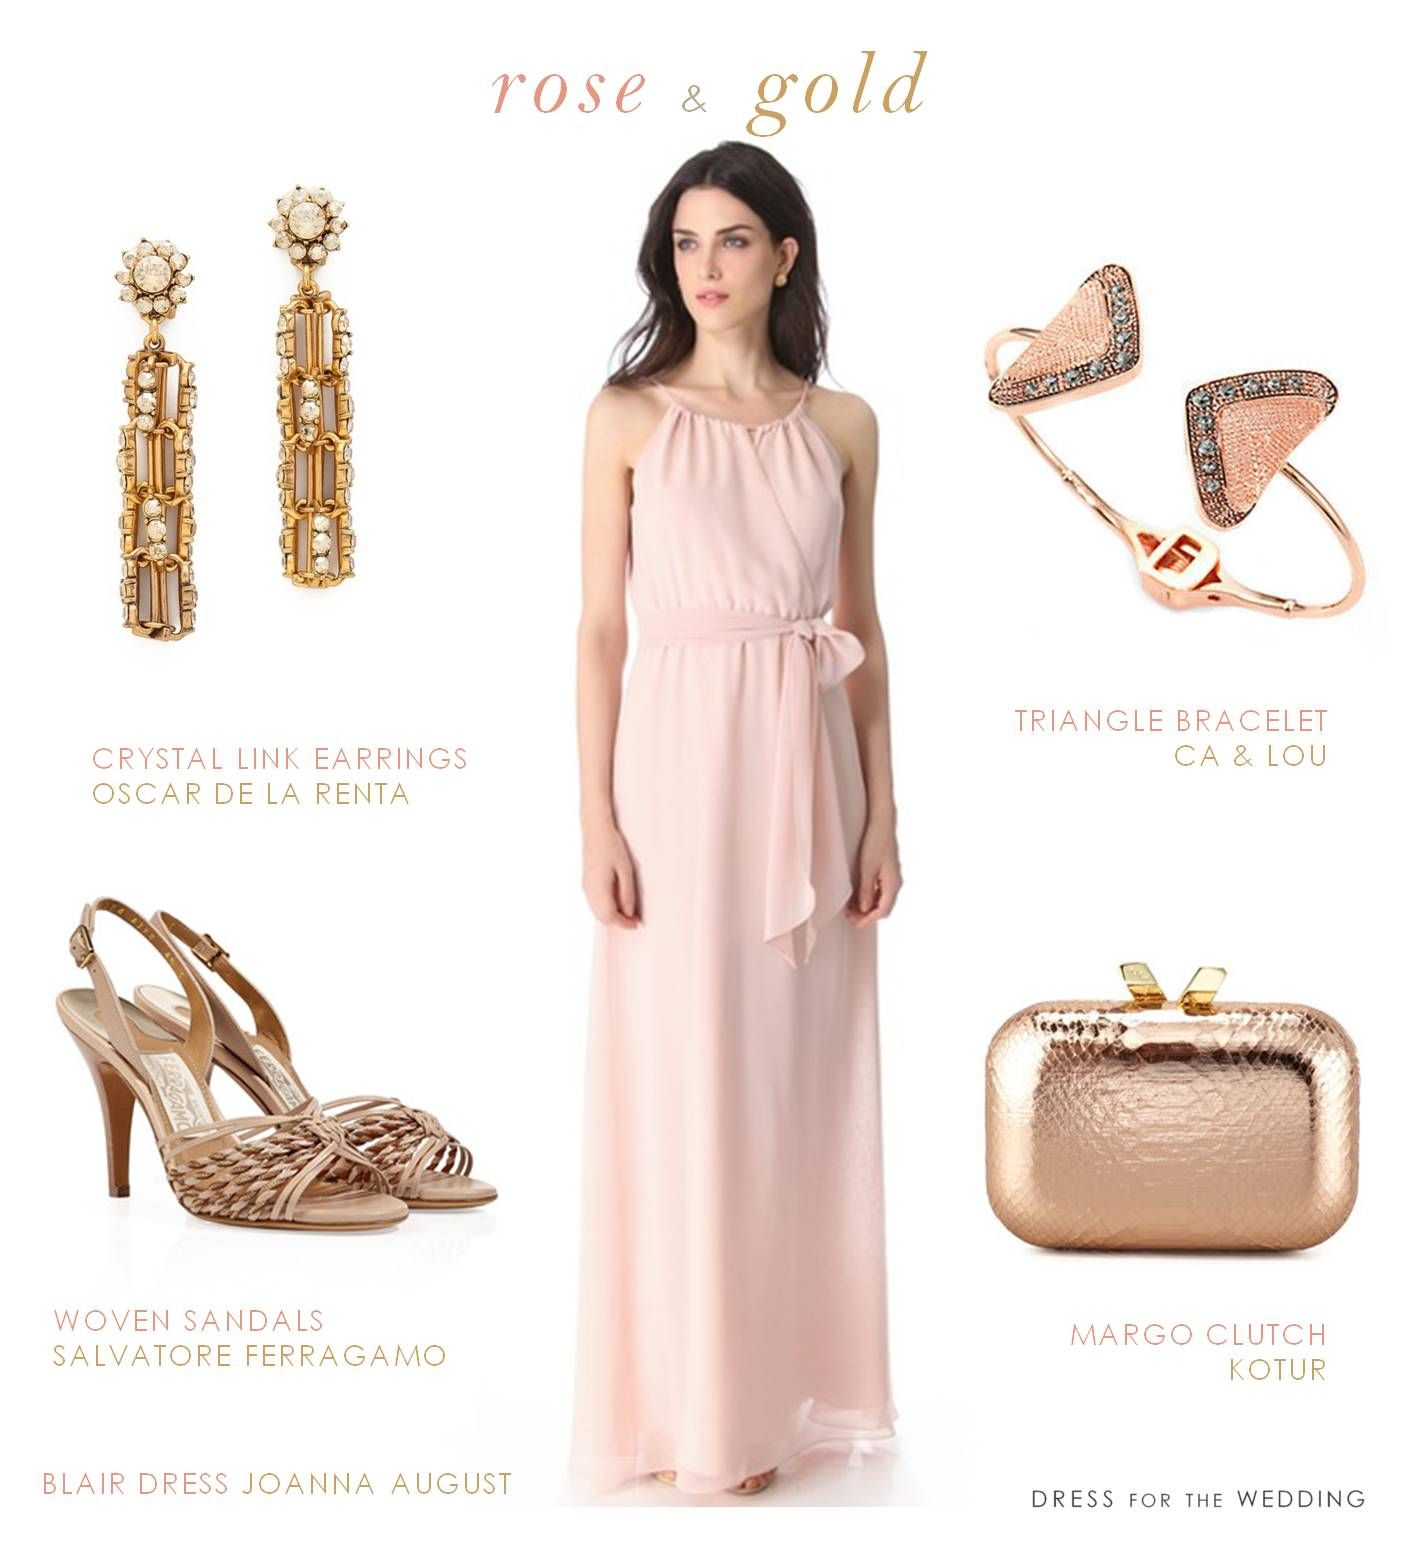 Blush Dress And Rose Gold Accessories